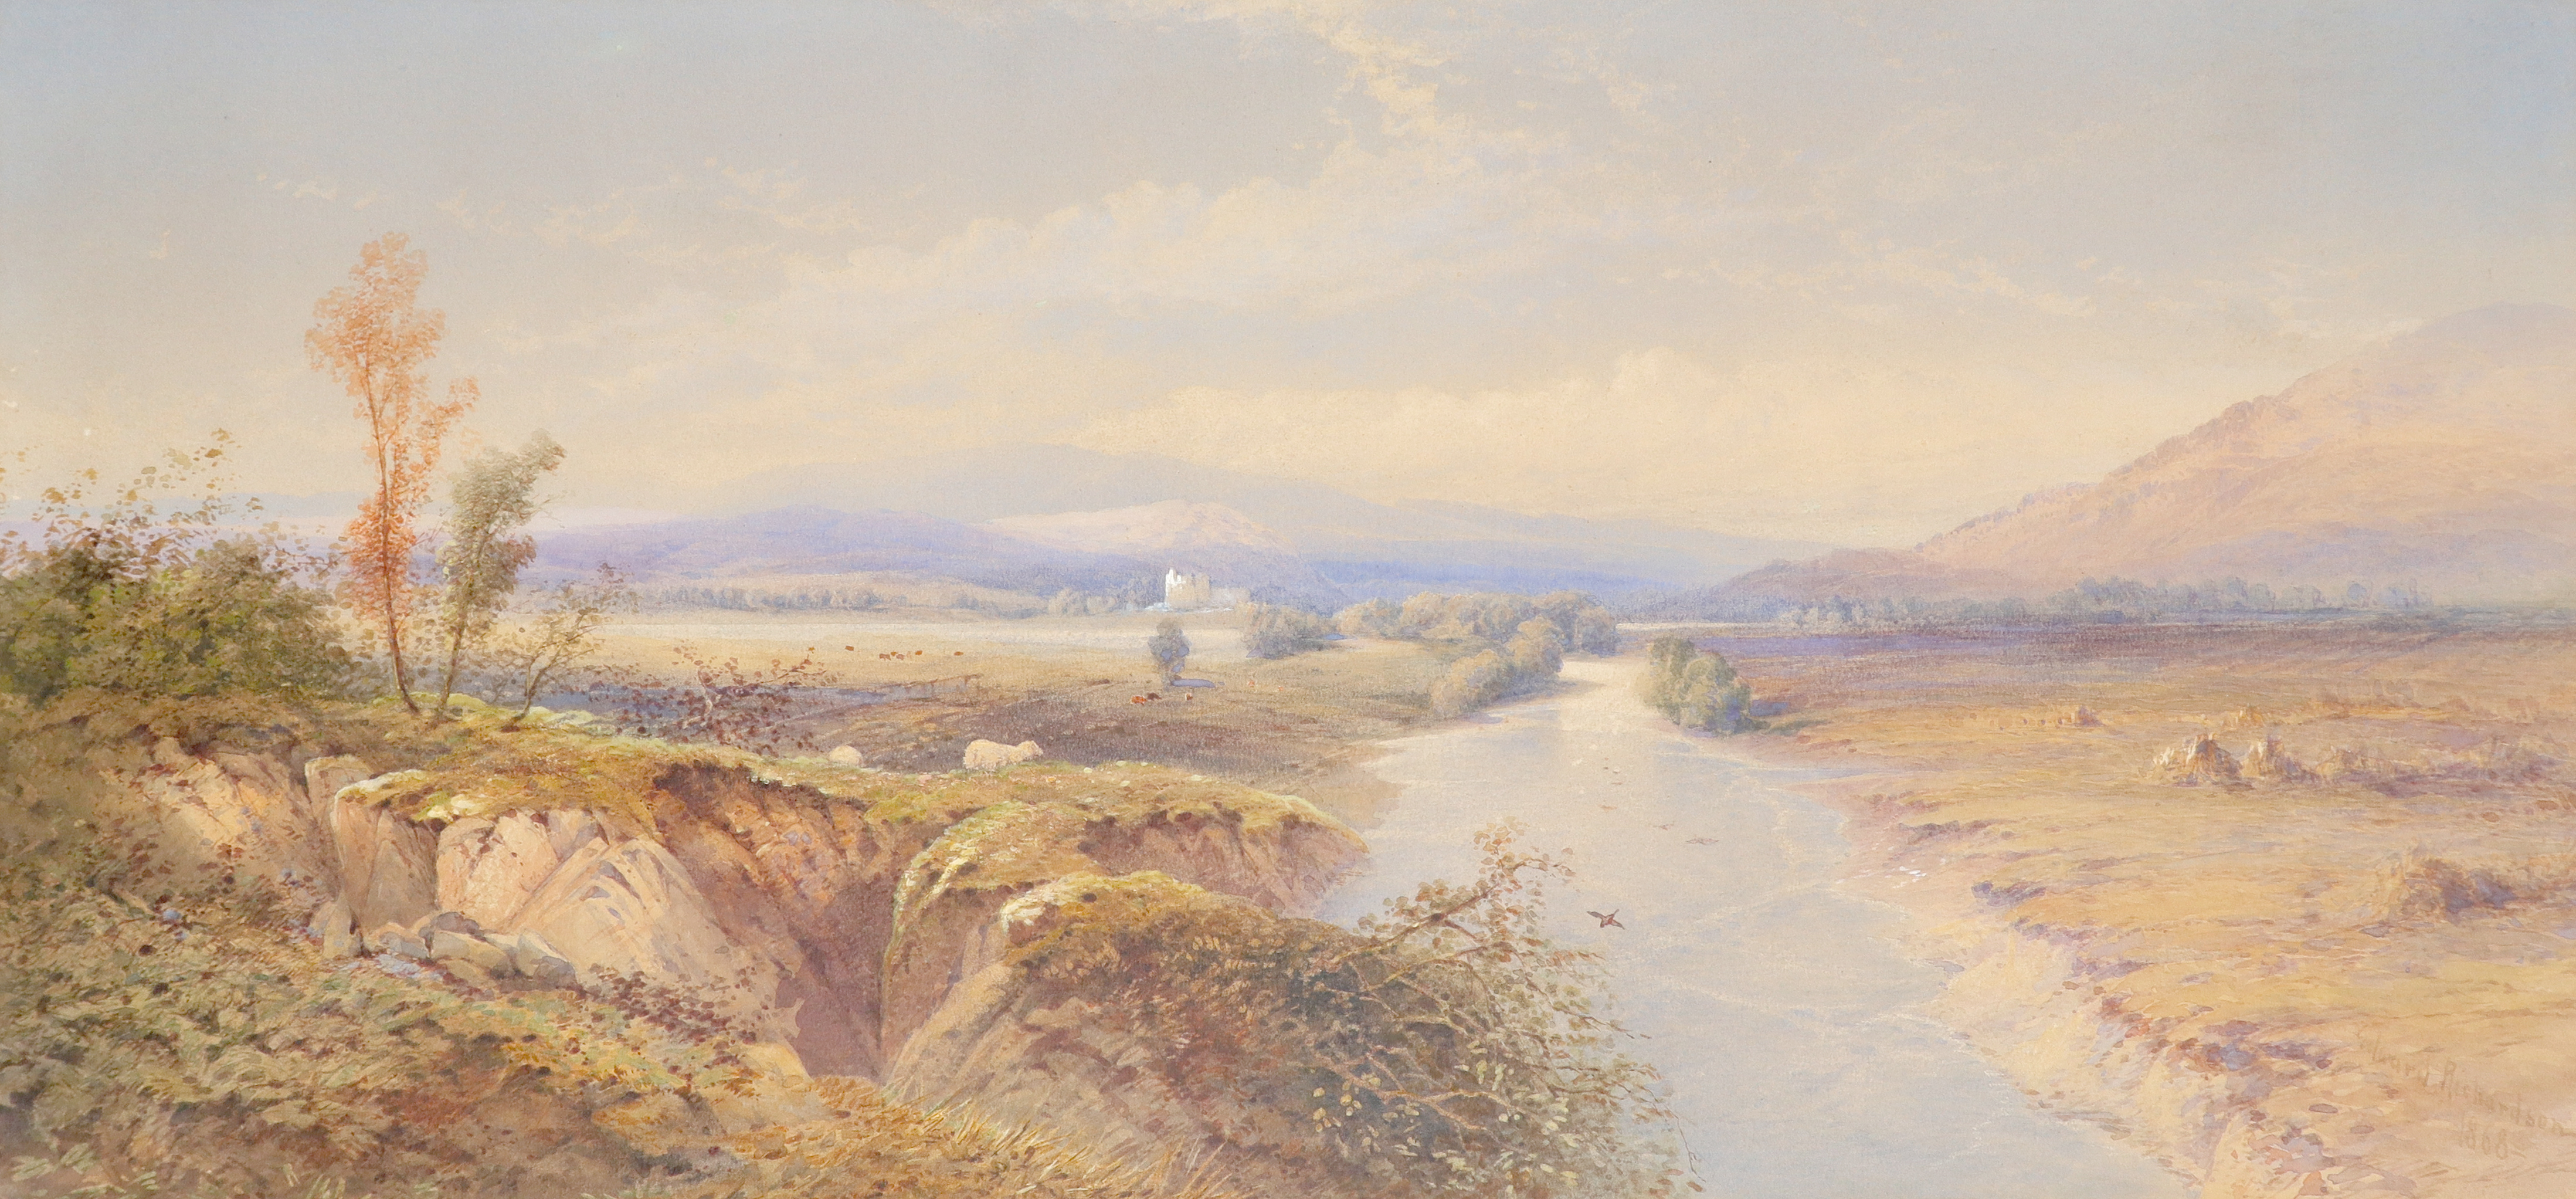 Edward M. Richardson ANWS (1810-1874) A view of Loch Awe with Kilchurn Castle in the distance Signed